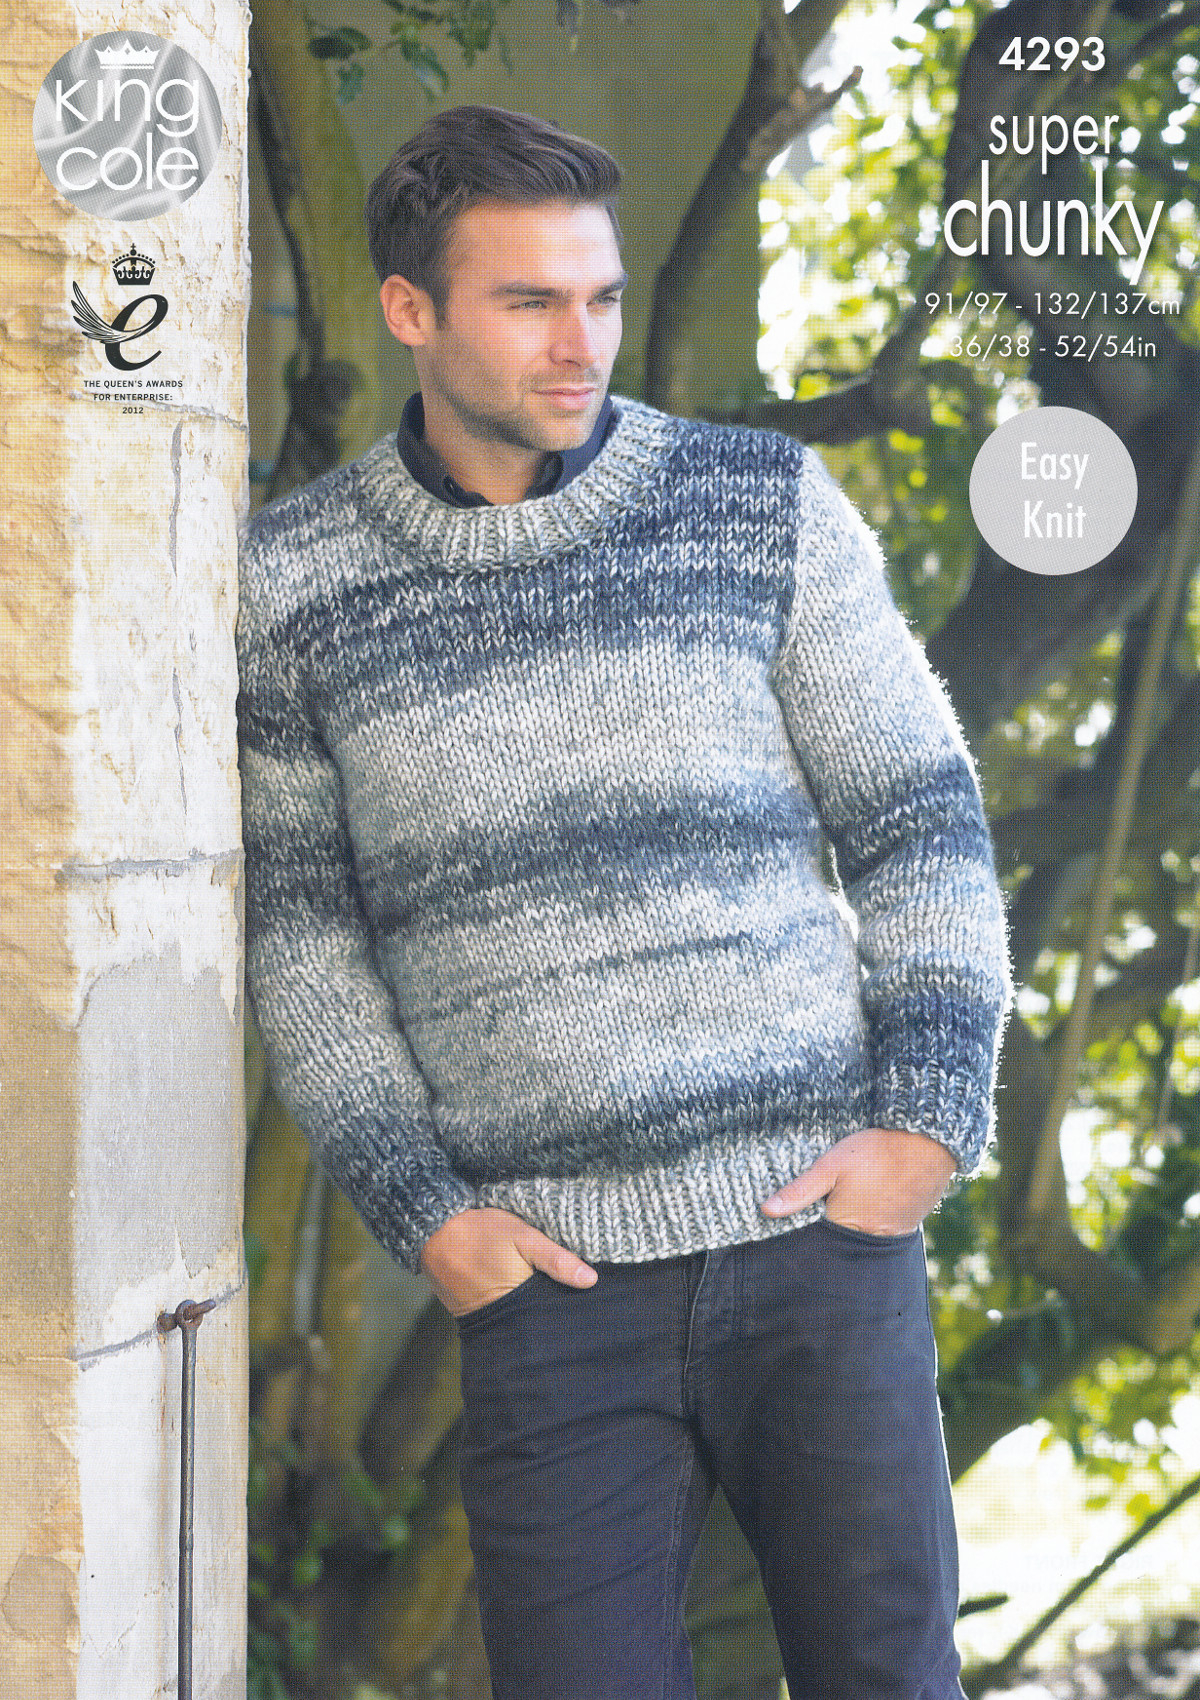 Mens Knitting Patterns Details About King Cole Mens Super Chunky Knitting Pattern Easy Knit Jumper Waistcoat 4293